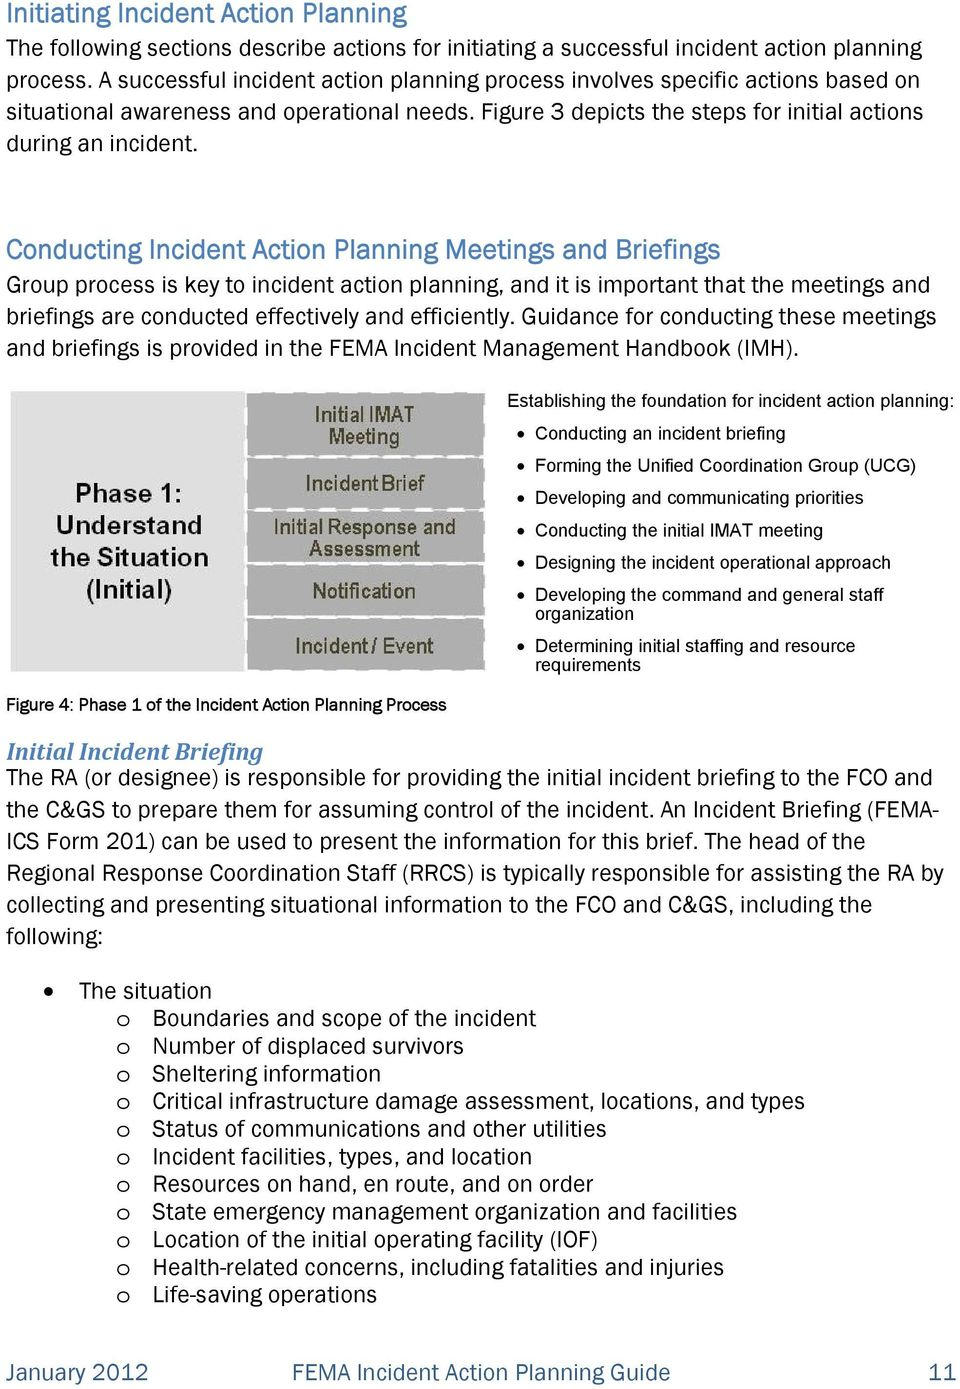 Conducting Incident Action Planning Meetings and Briefings Group process is key to incident action planning, and it is important that the meetings and briefings are conducted effectively and